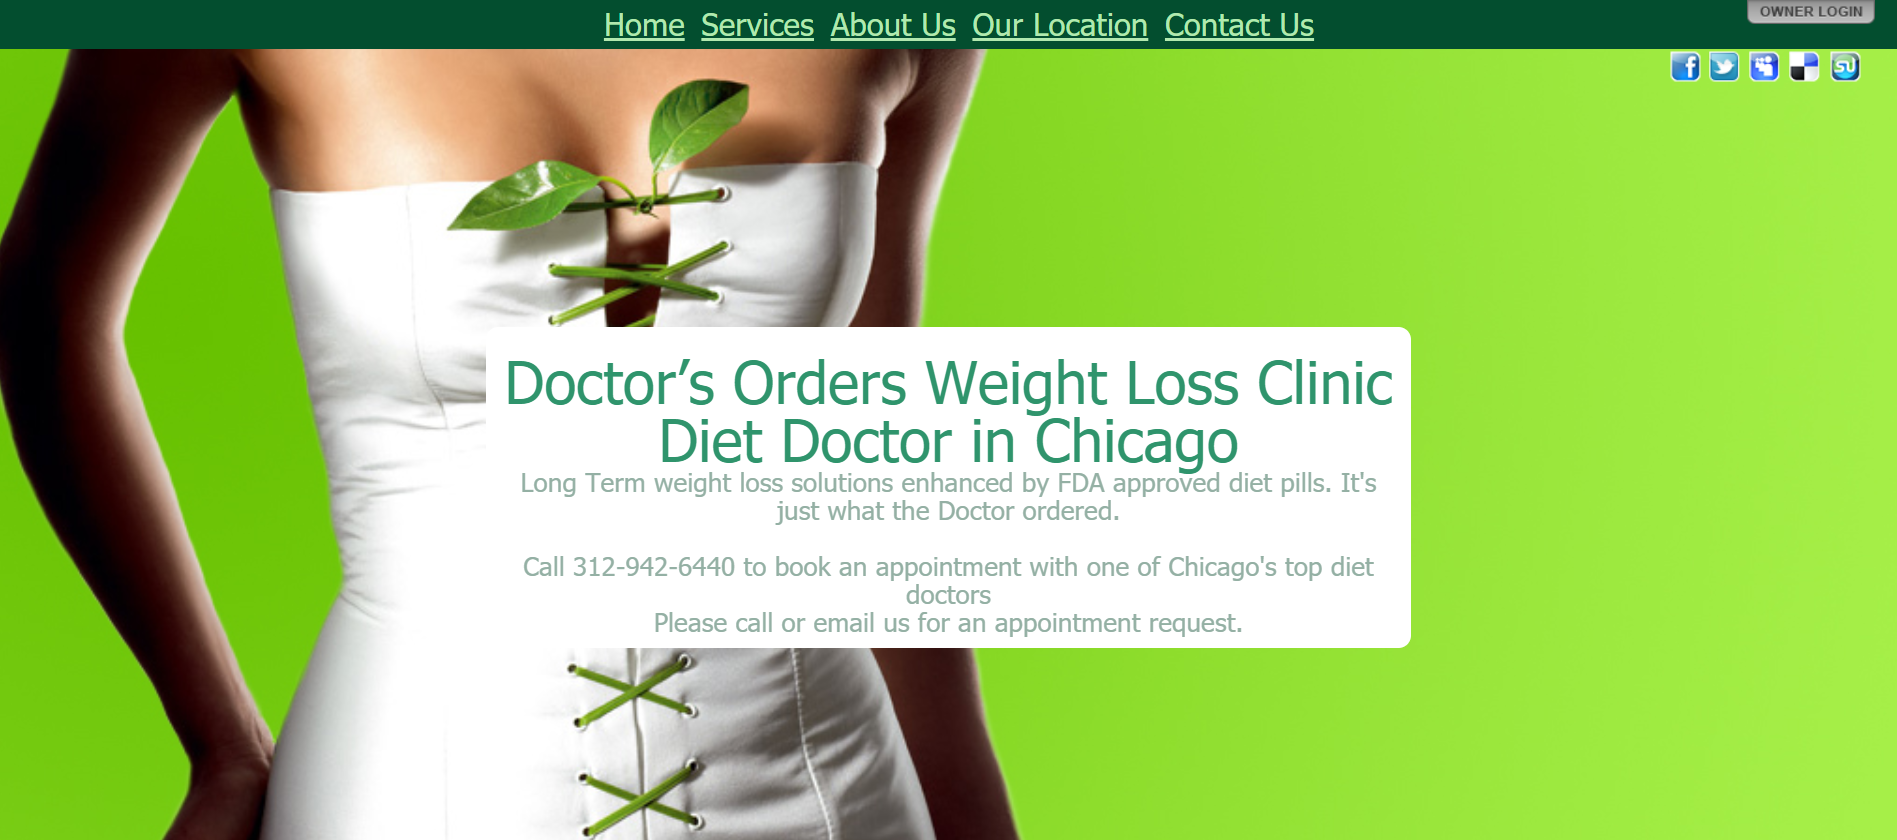 Doctor's Orders Weight Loss Clinic